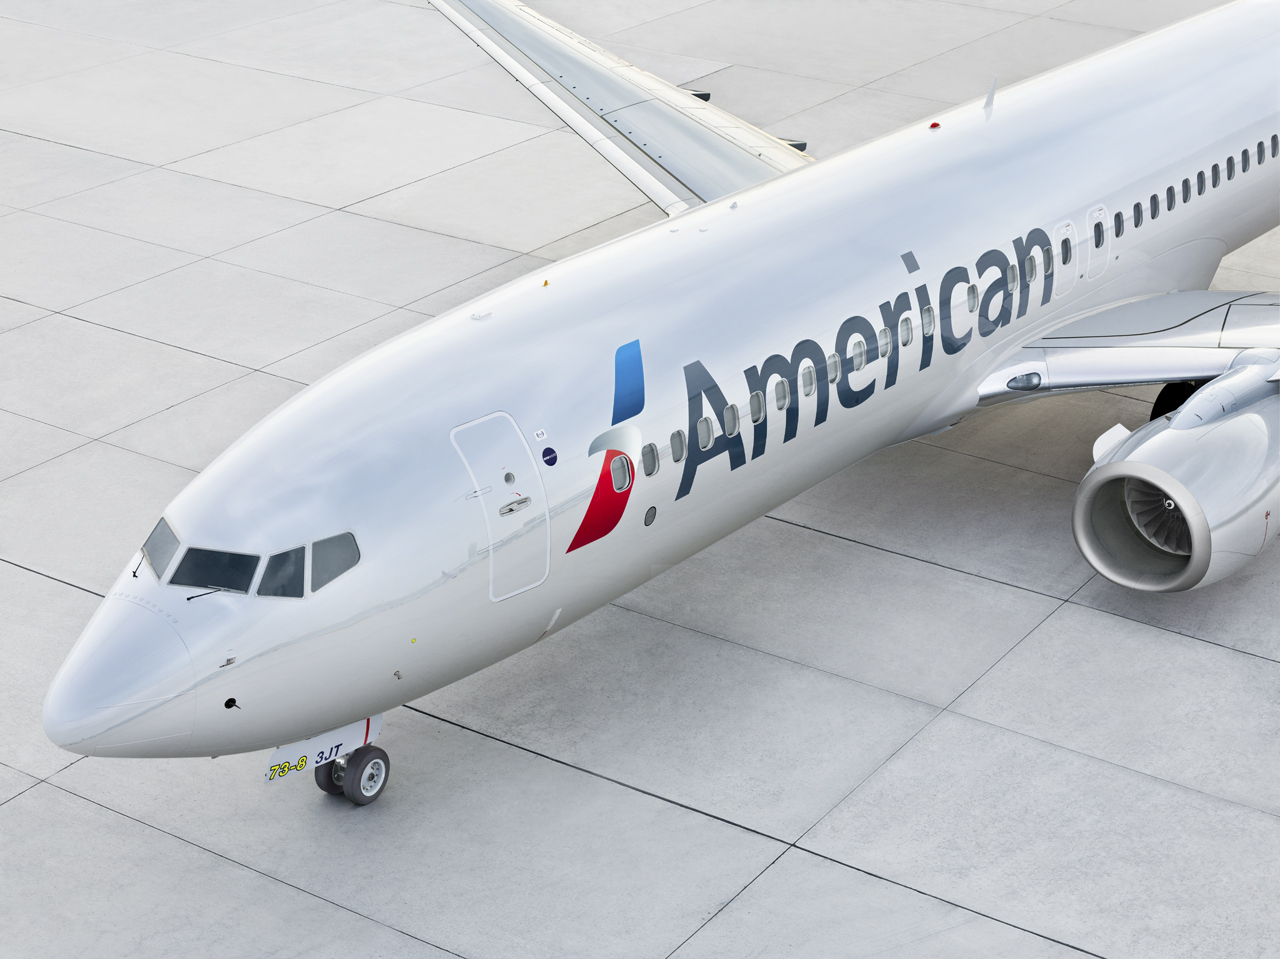 American Airlines to move flights to Beijing Daxing International Airport in March 2021